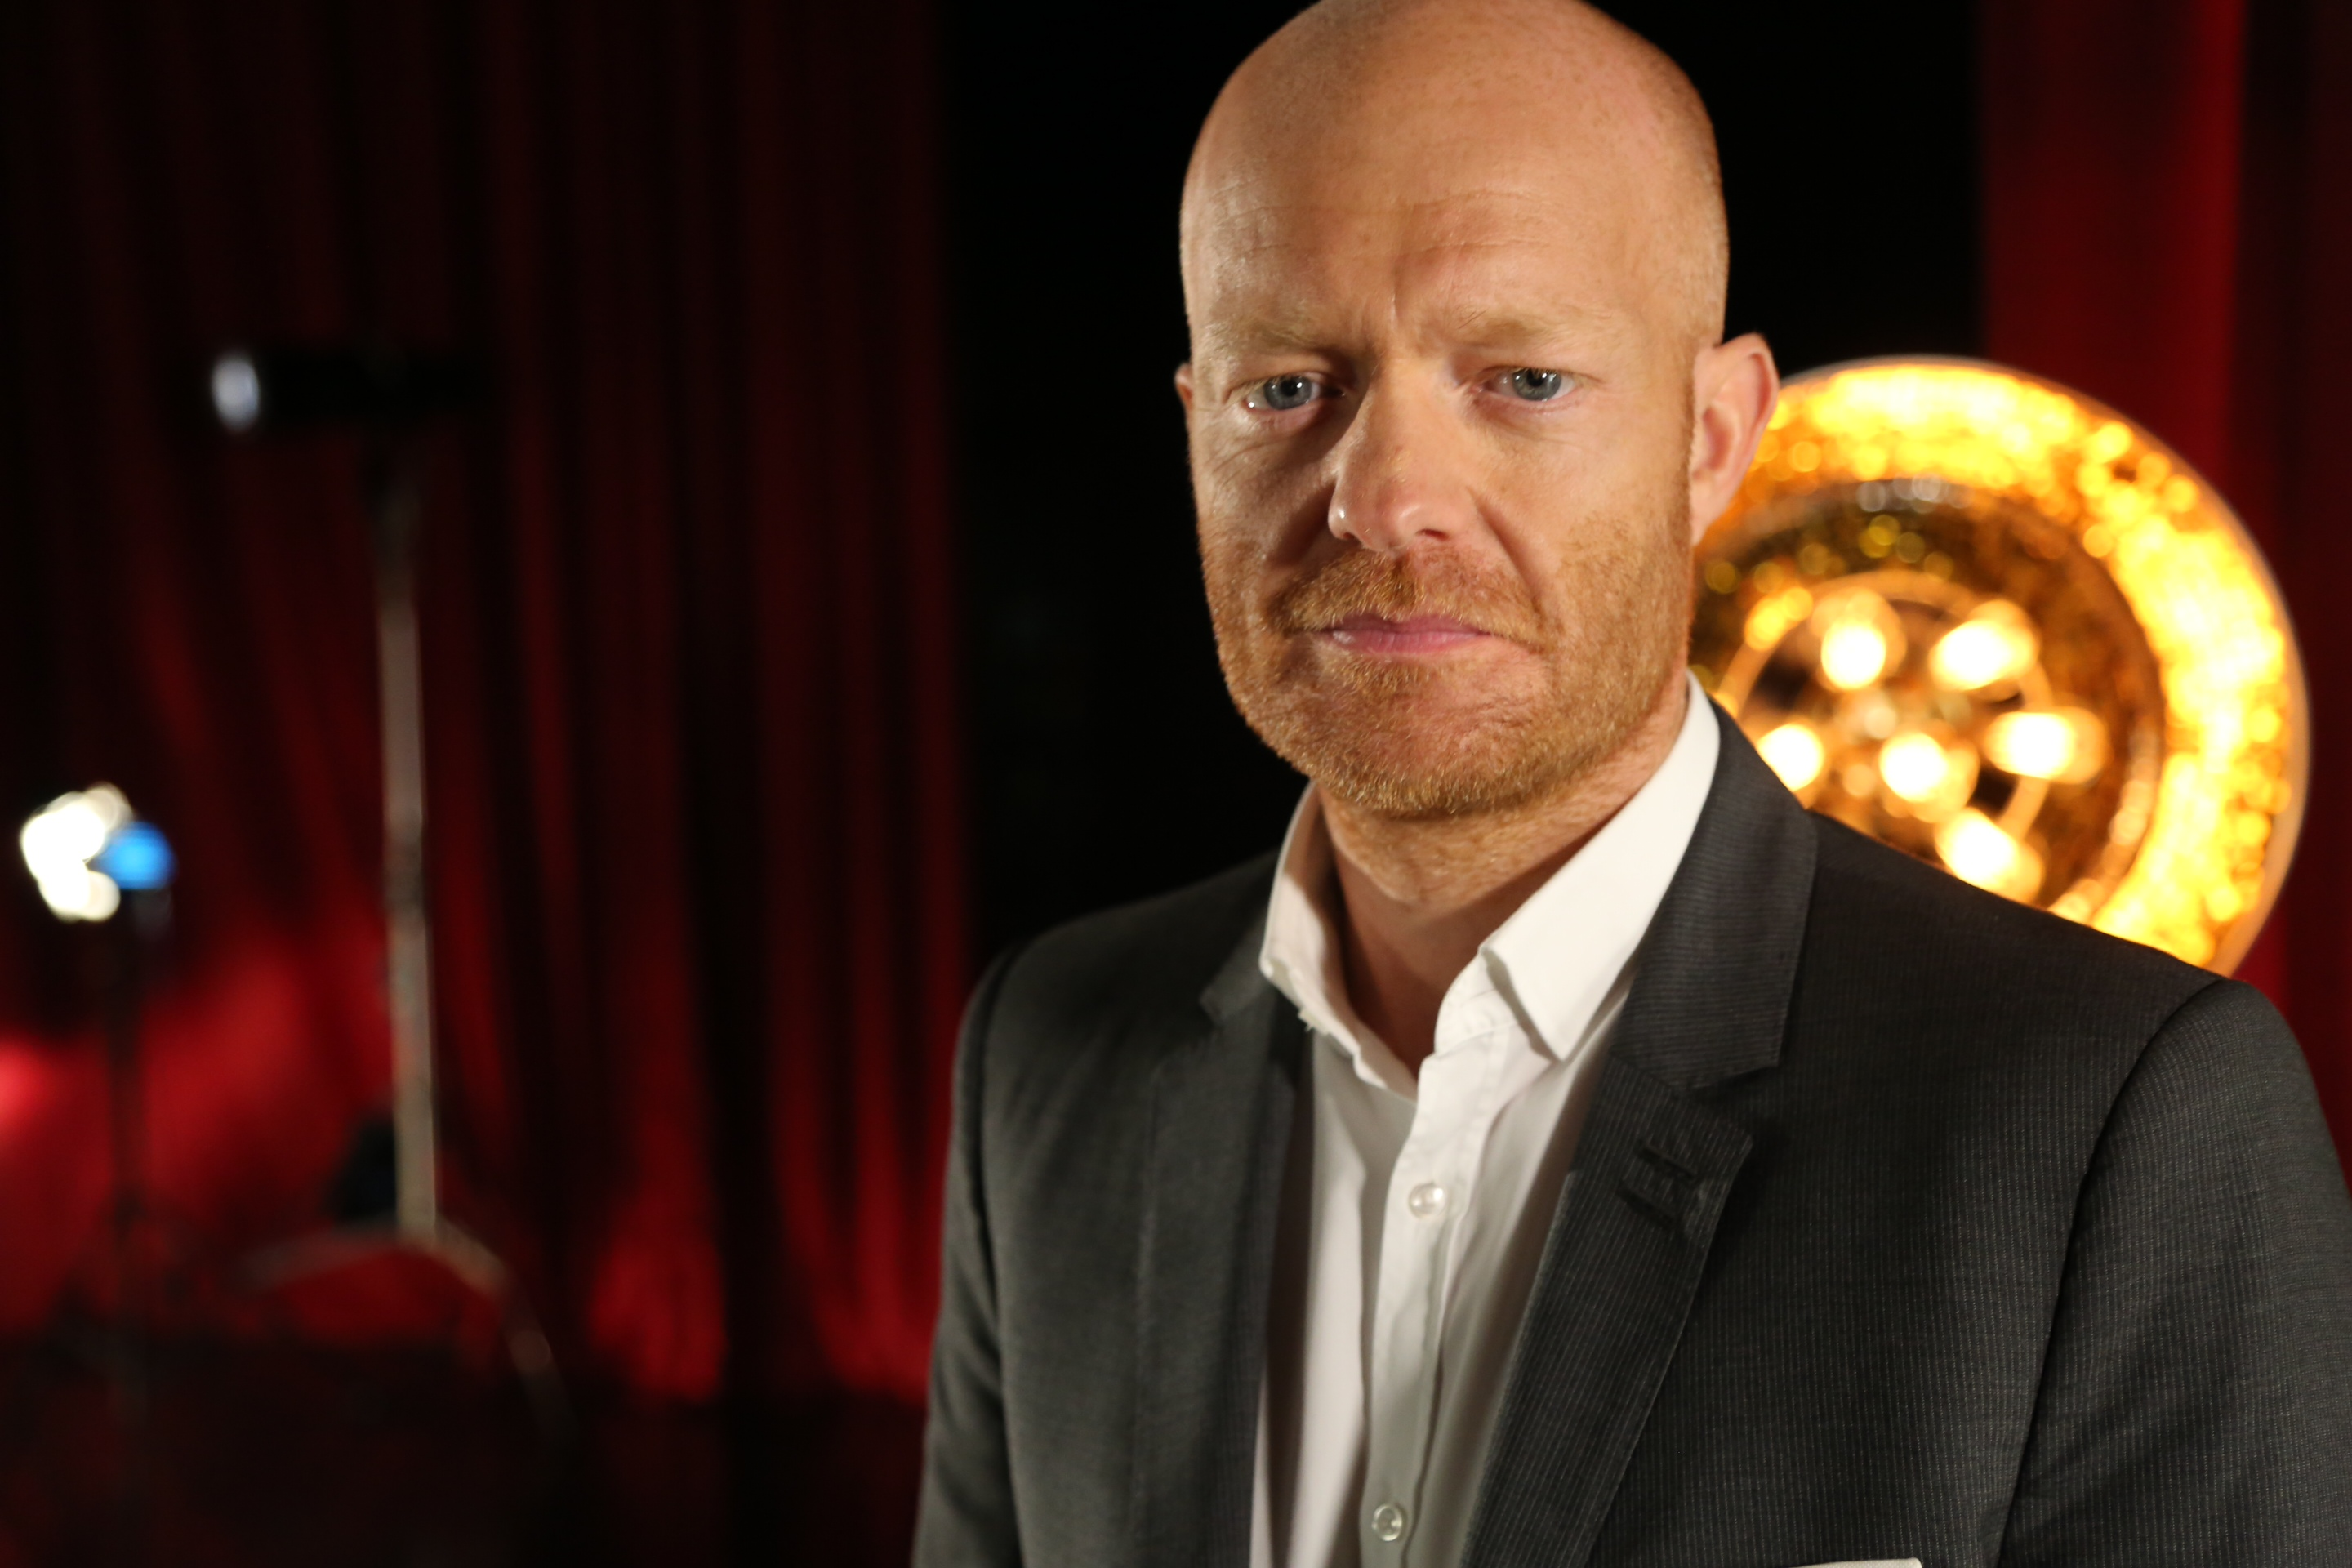 Jake Wood, aka EastEnders heartthrob Max Branning, swaps Albert Square for Strictly Come Dancing